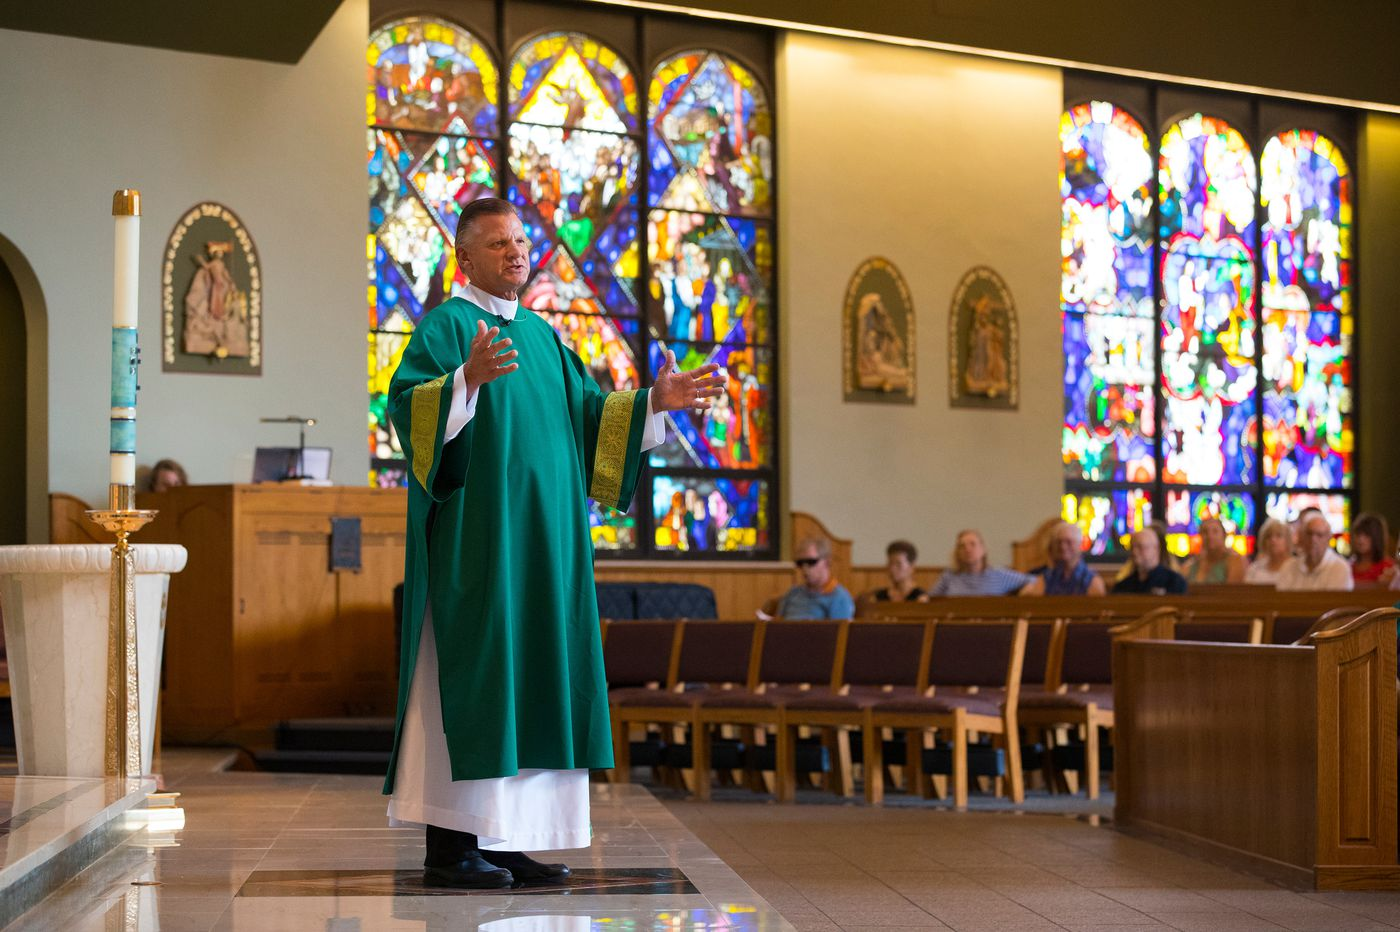 Former NBA referee Steve Javie goes from the hardwood to homilies, becoming a Catholic deacon